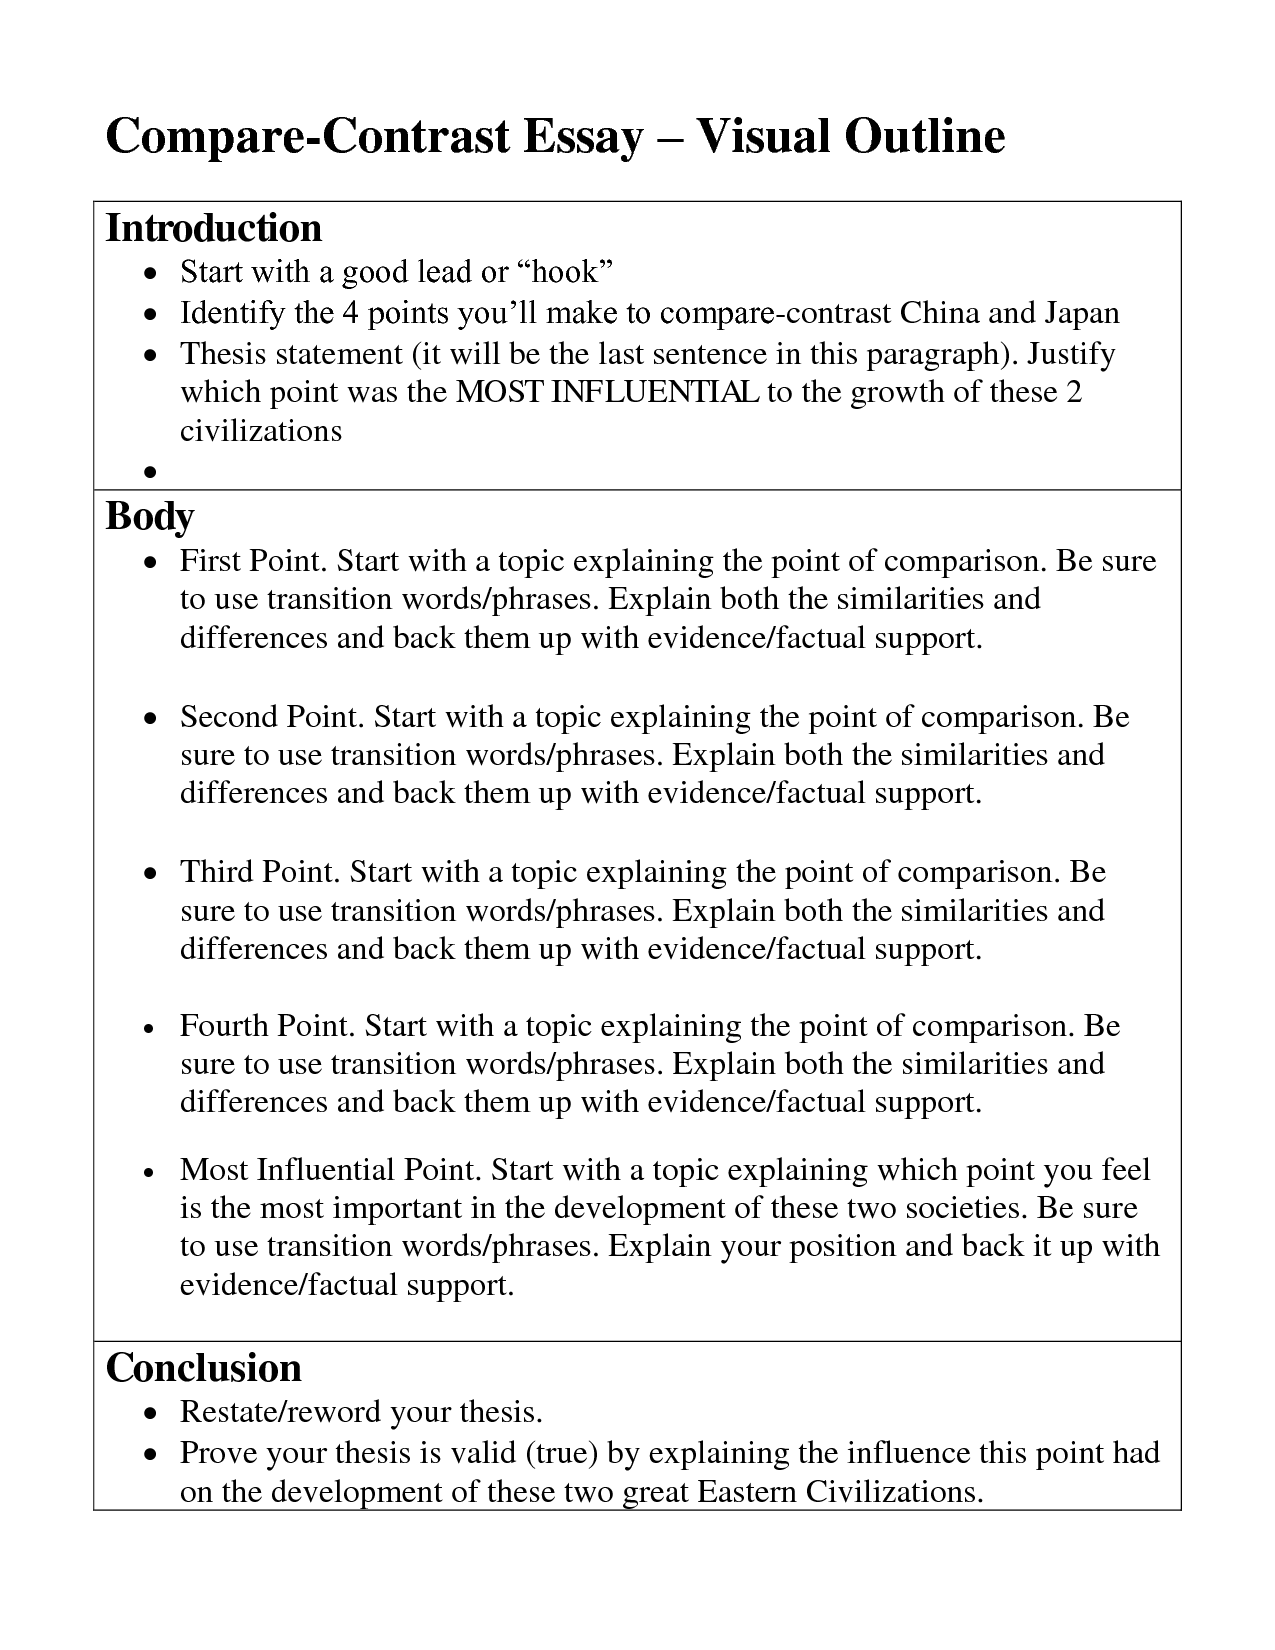 015 Comparison And Contrast Essay Top Rated Writing Service In Compare Format Template Introduction Research Best Paper Paragraph For Full